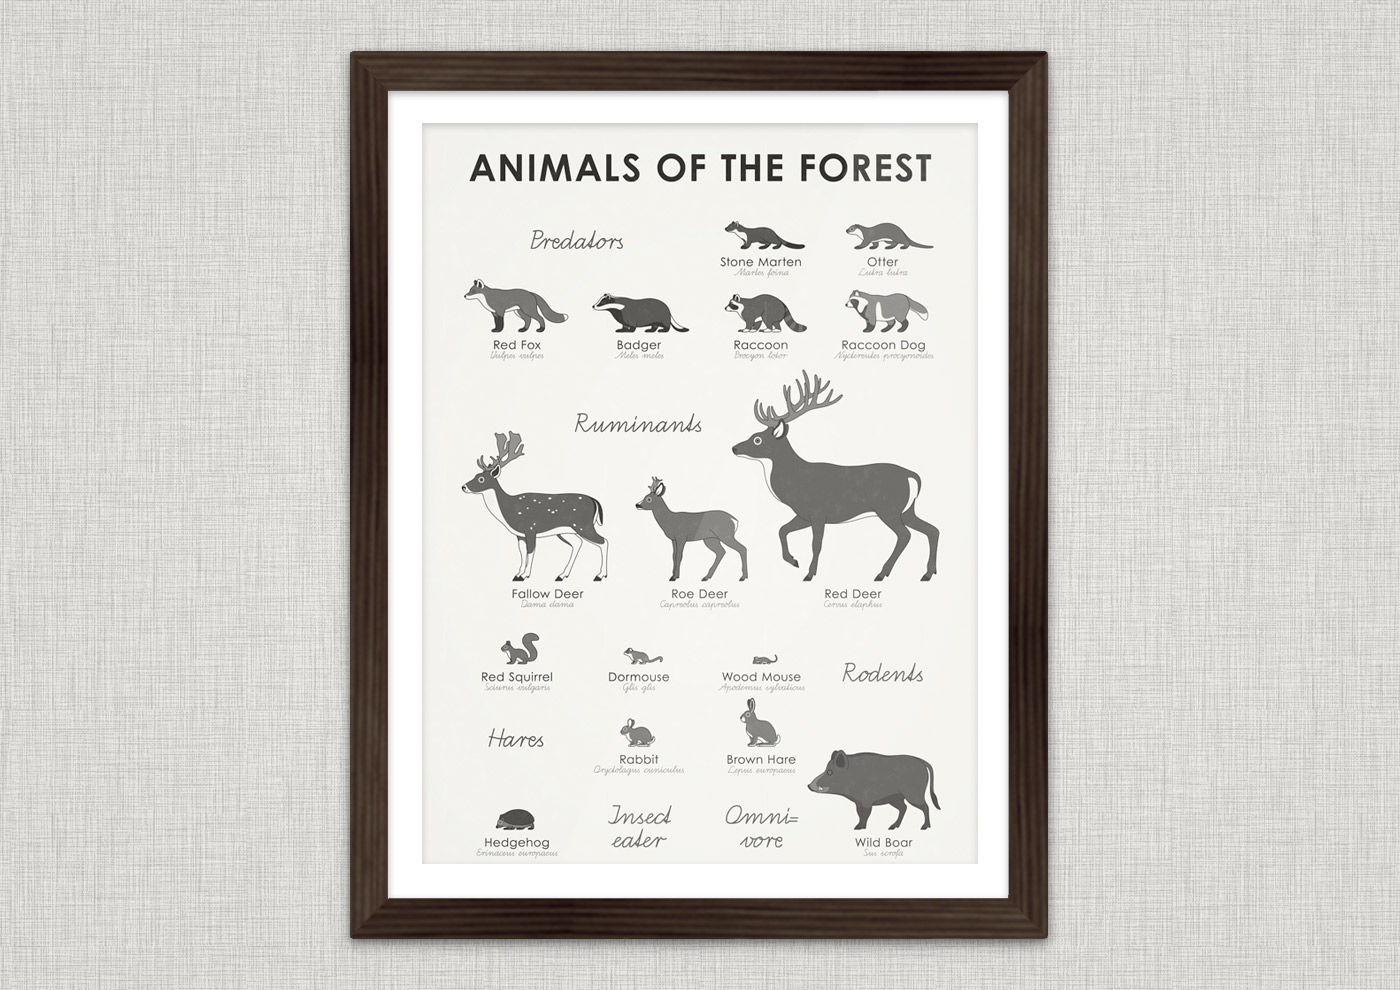 A practical infographic sheet that helps you to easily identify, learn and remember typical looks, marking and habit of forest animals such as red fox, badger, stone marten, fish otter, raccoon, raccoon dog, fallow deer, roe deer, red deer, squirrel, dormouse, wood mouse, rabbit, hare, hedgehog and wild boar.